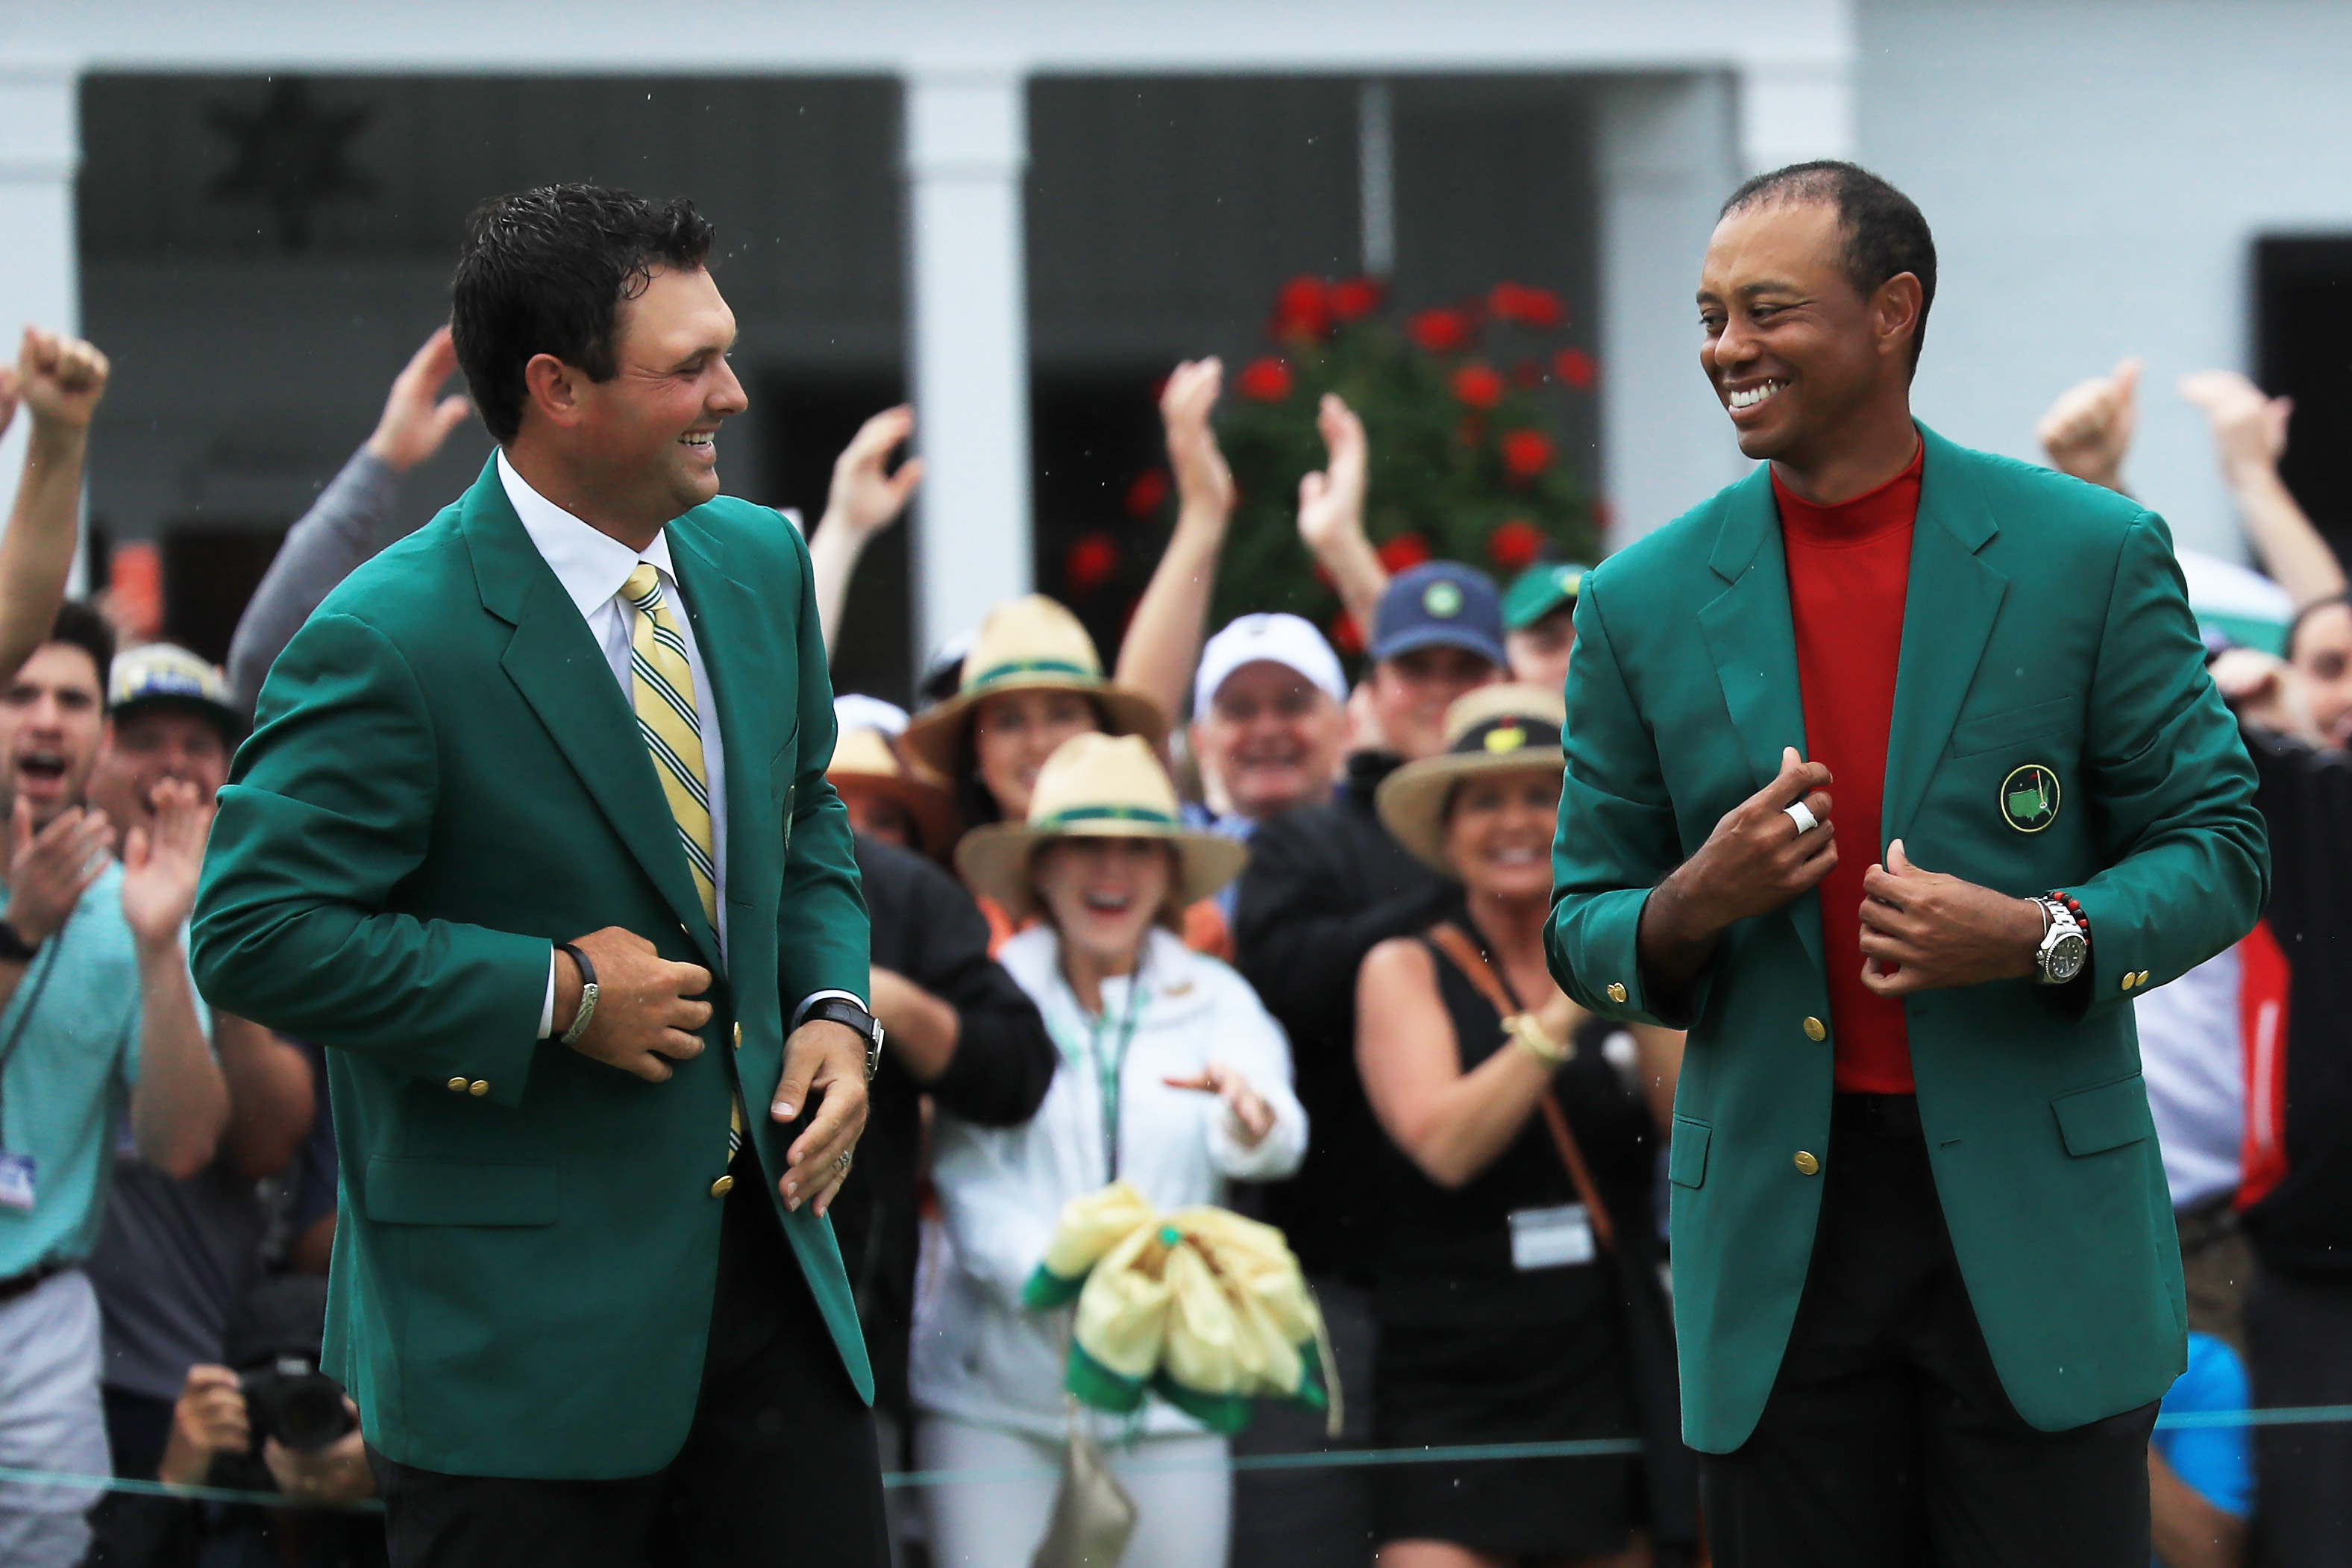 Tiger Woods installed as 2019 PGA Championship favorite following Masters win